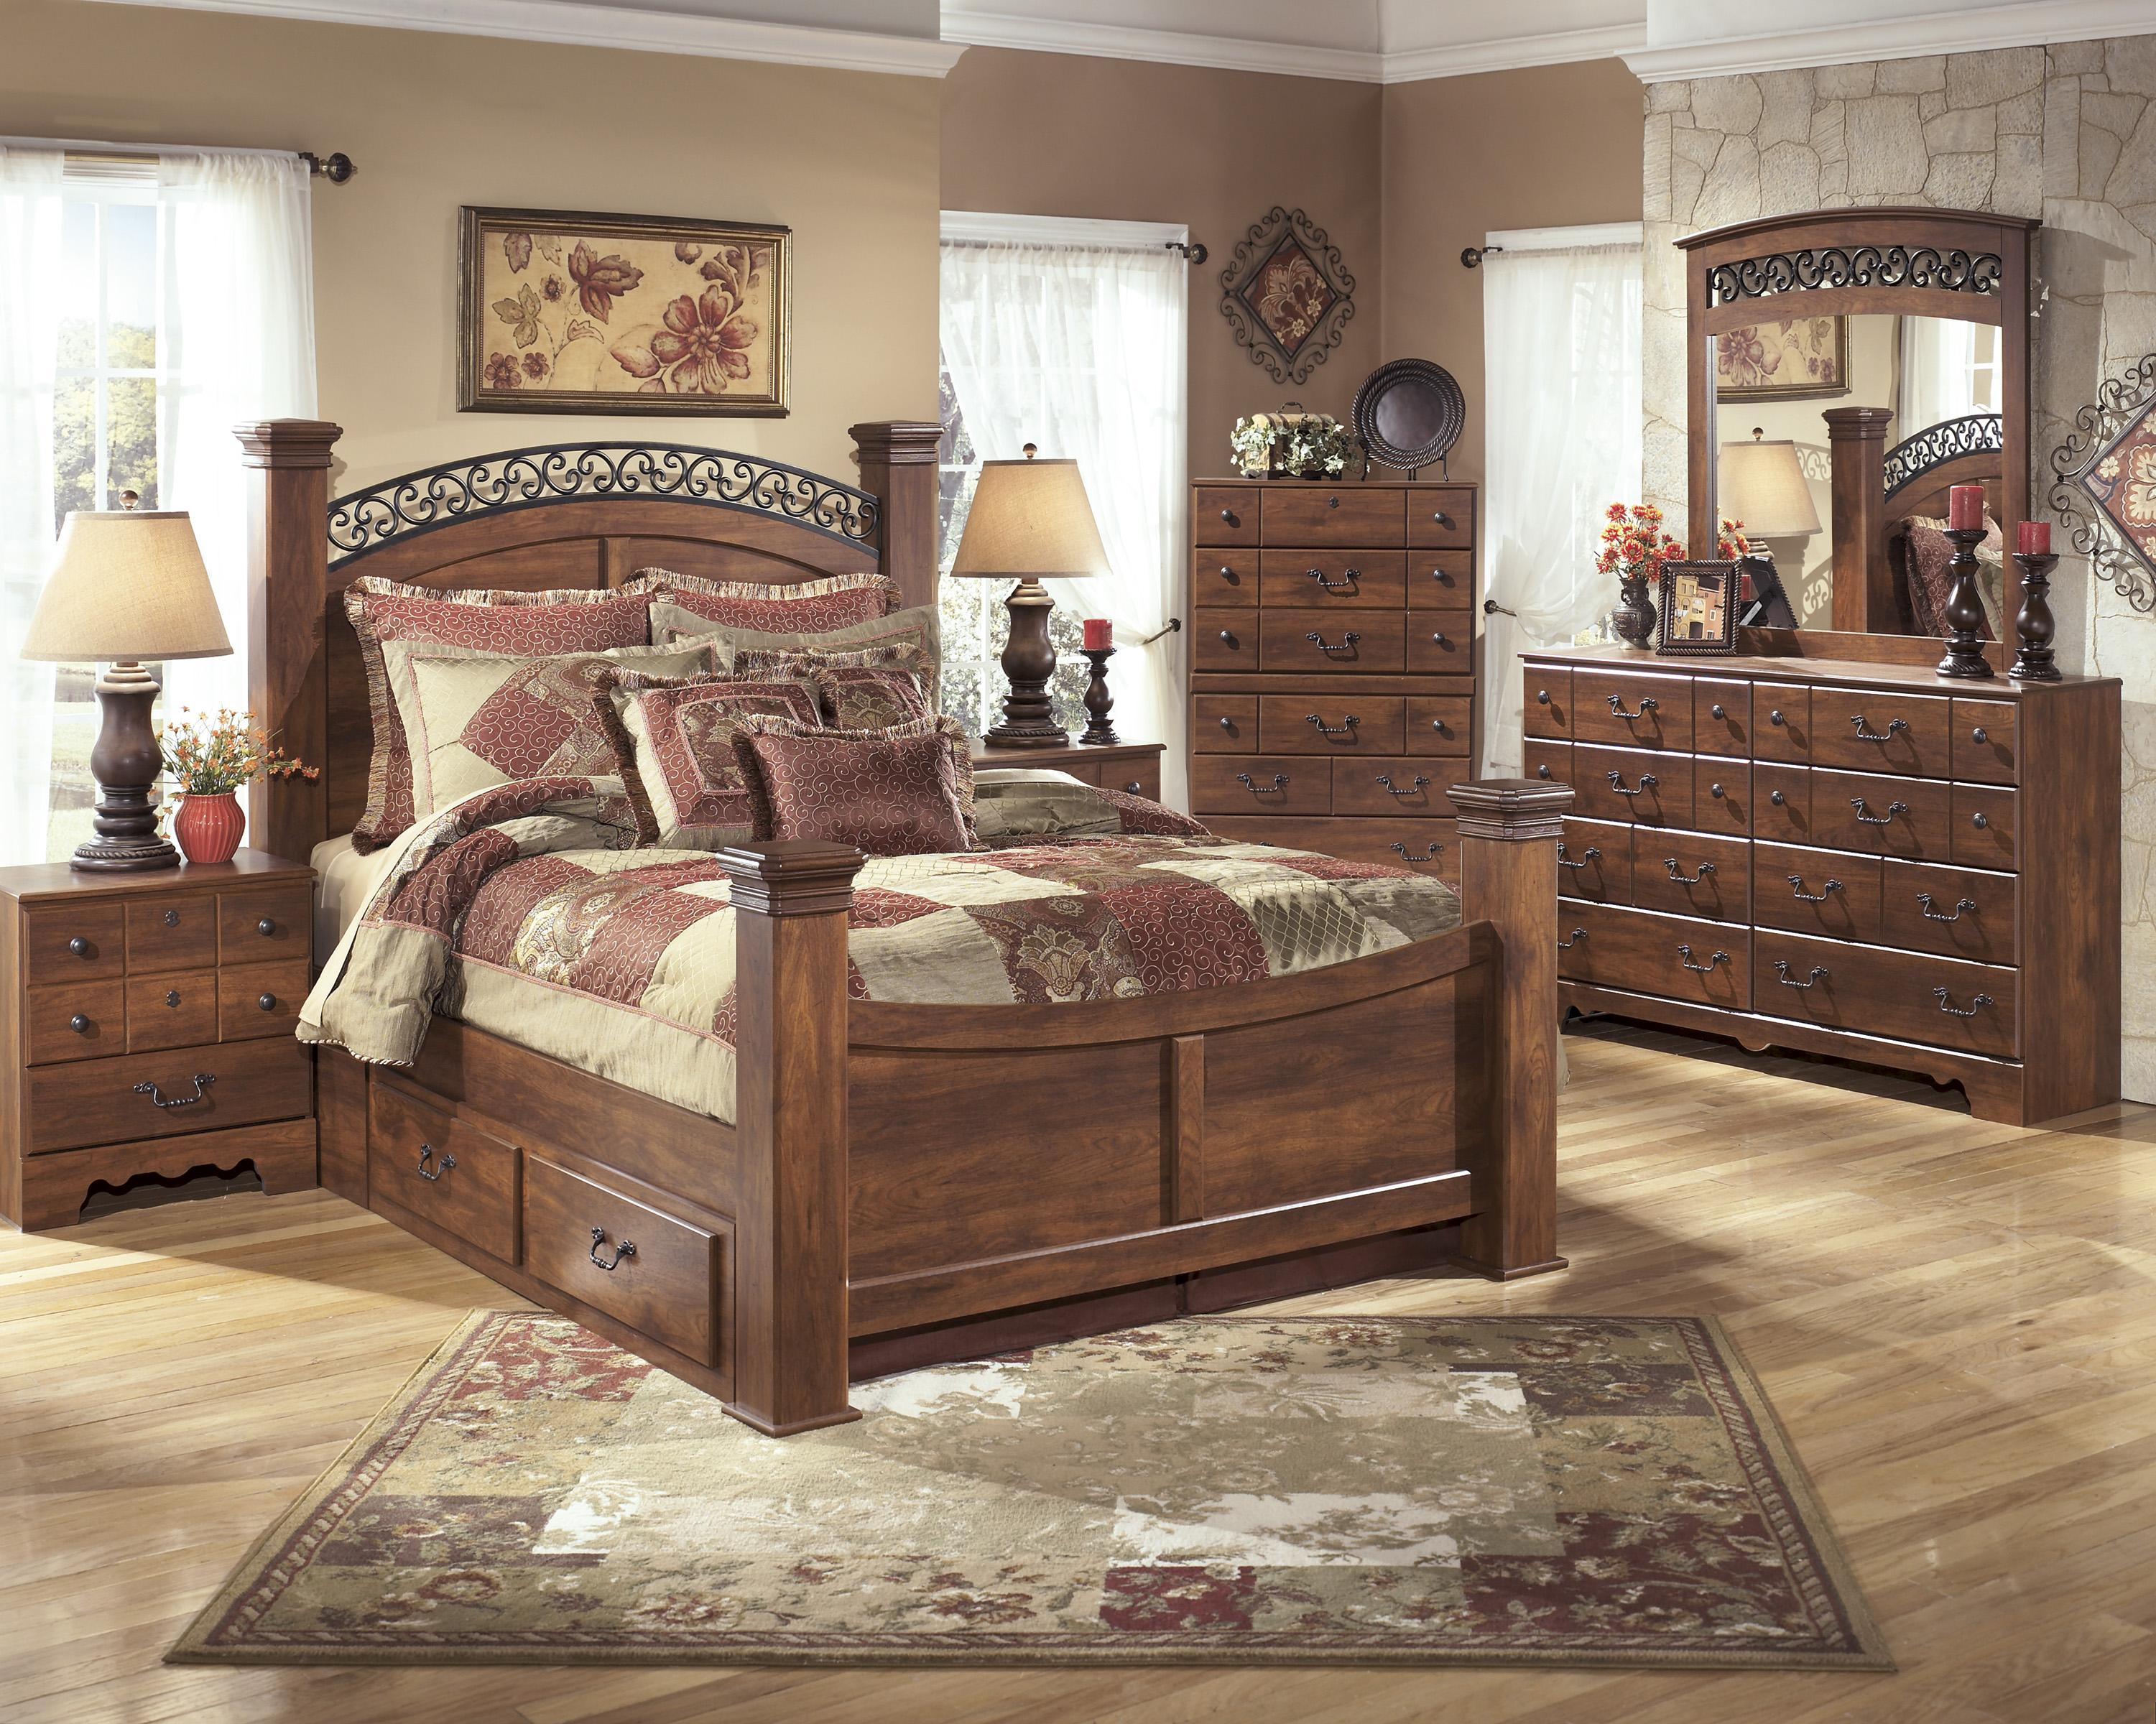 Signature design by ashley timberline king bedroom group for Signature bedroom furniture